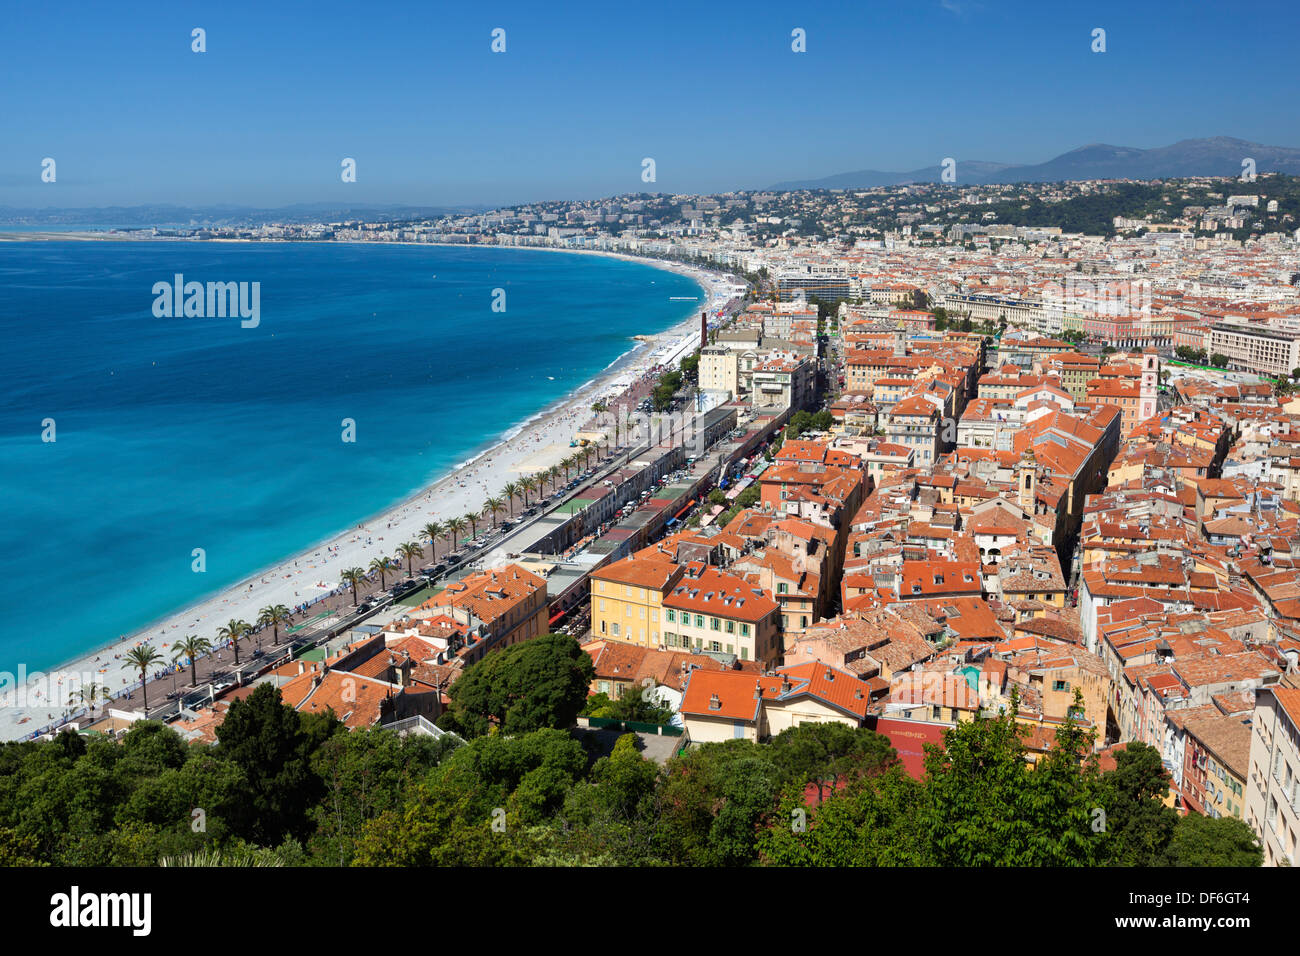 View over bay and Promenade des Anglais from the parc du chateau, Nice, Provence-Alpes-Cote d'Azur, France, Europe Stock Photo